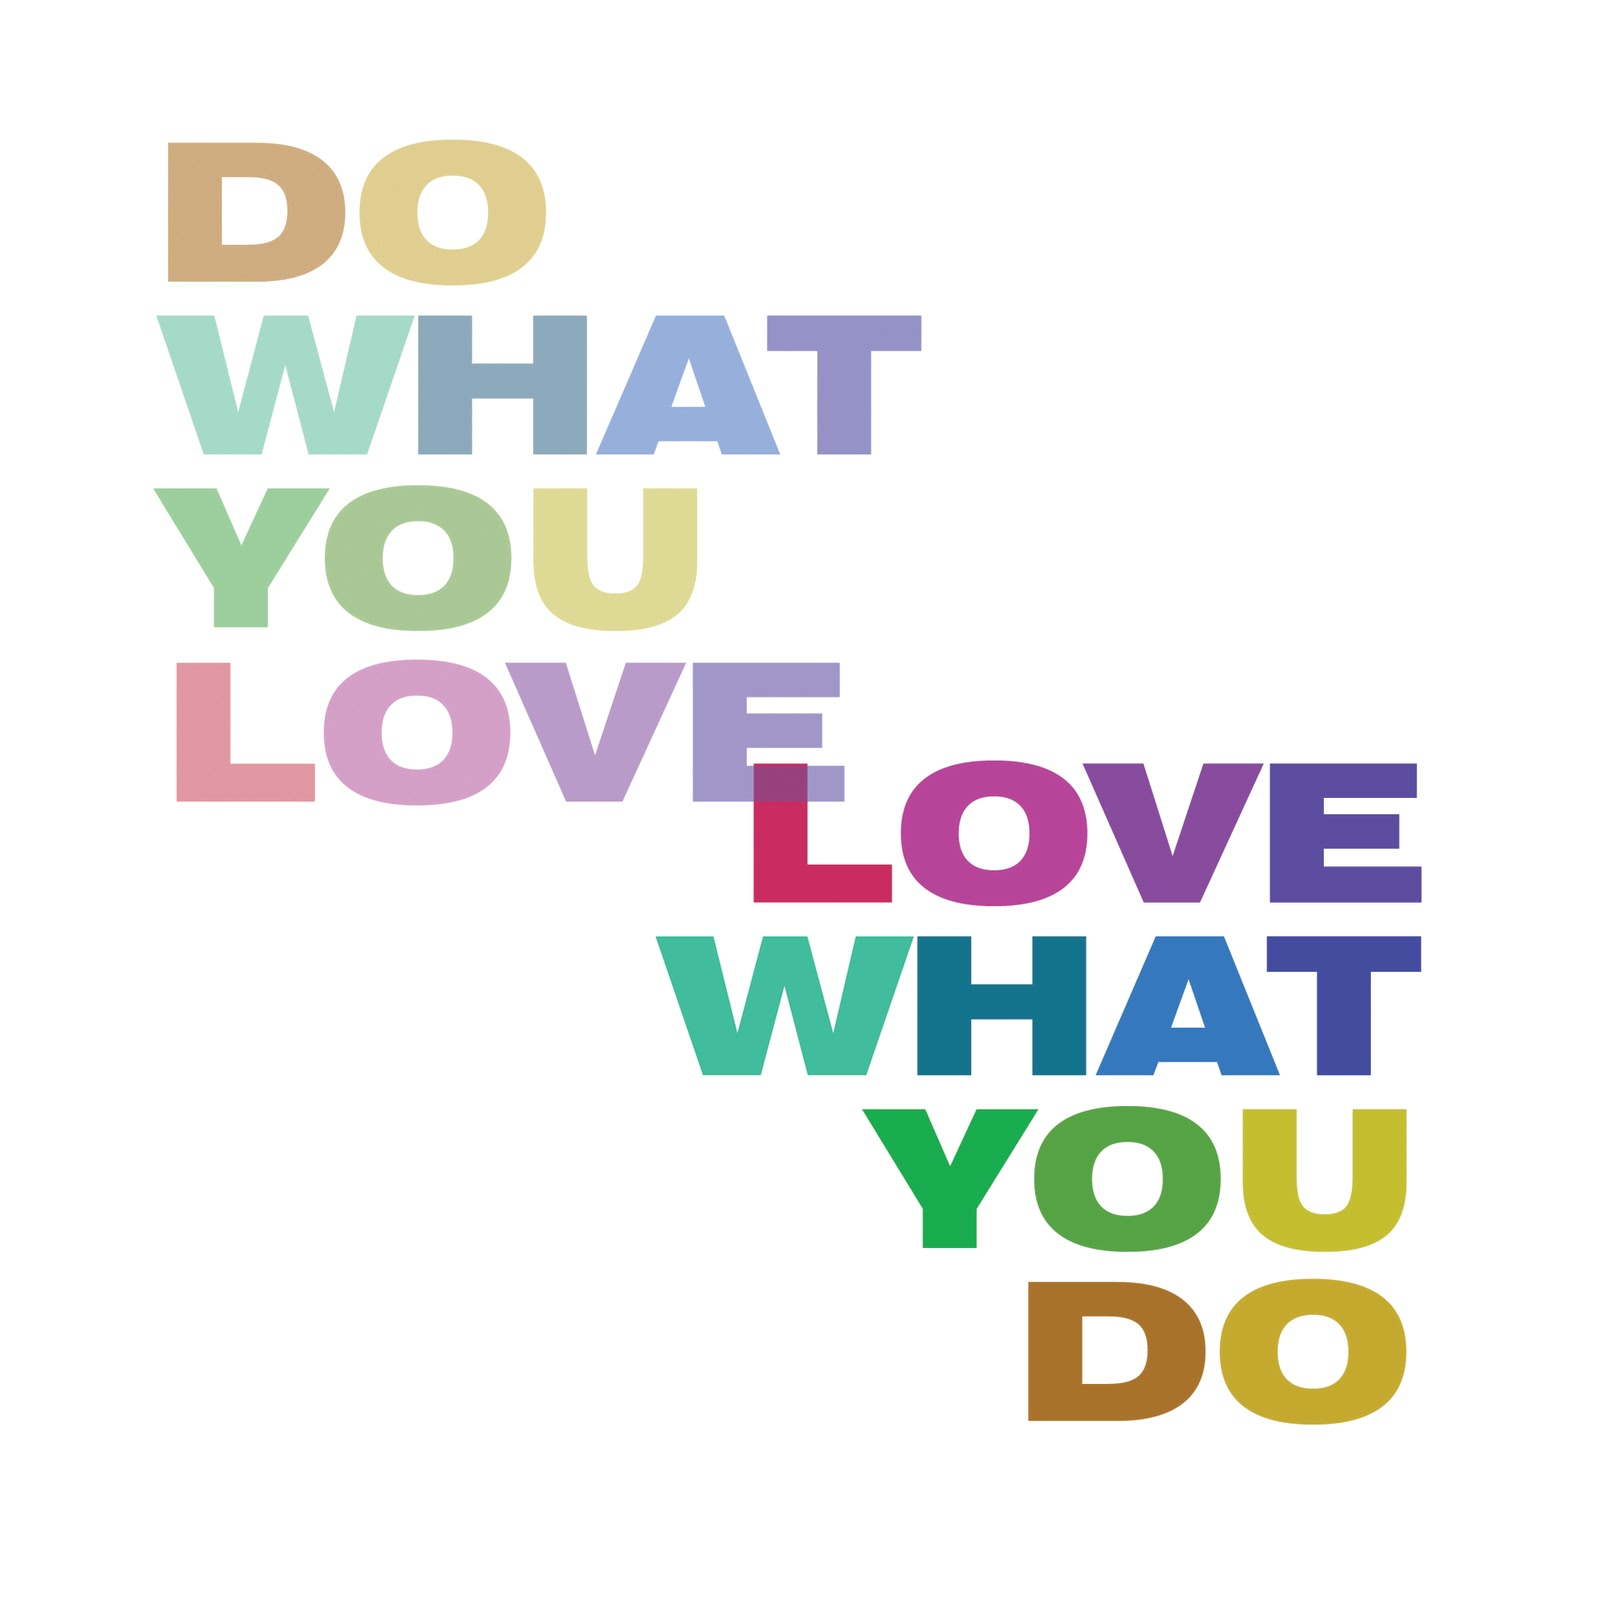 Doing What You Love Quotes: Find What You Love